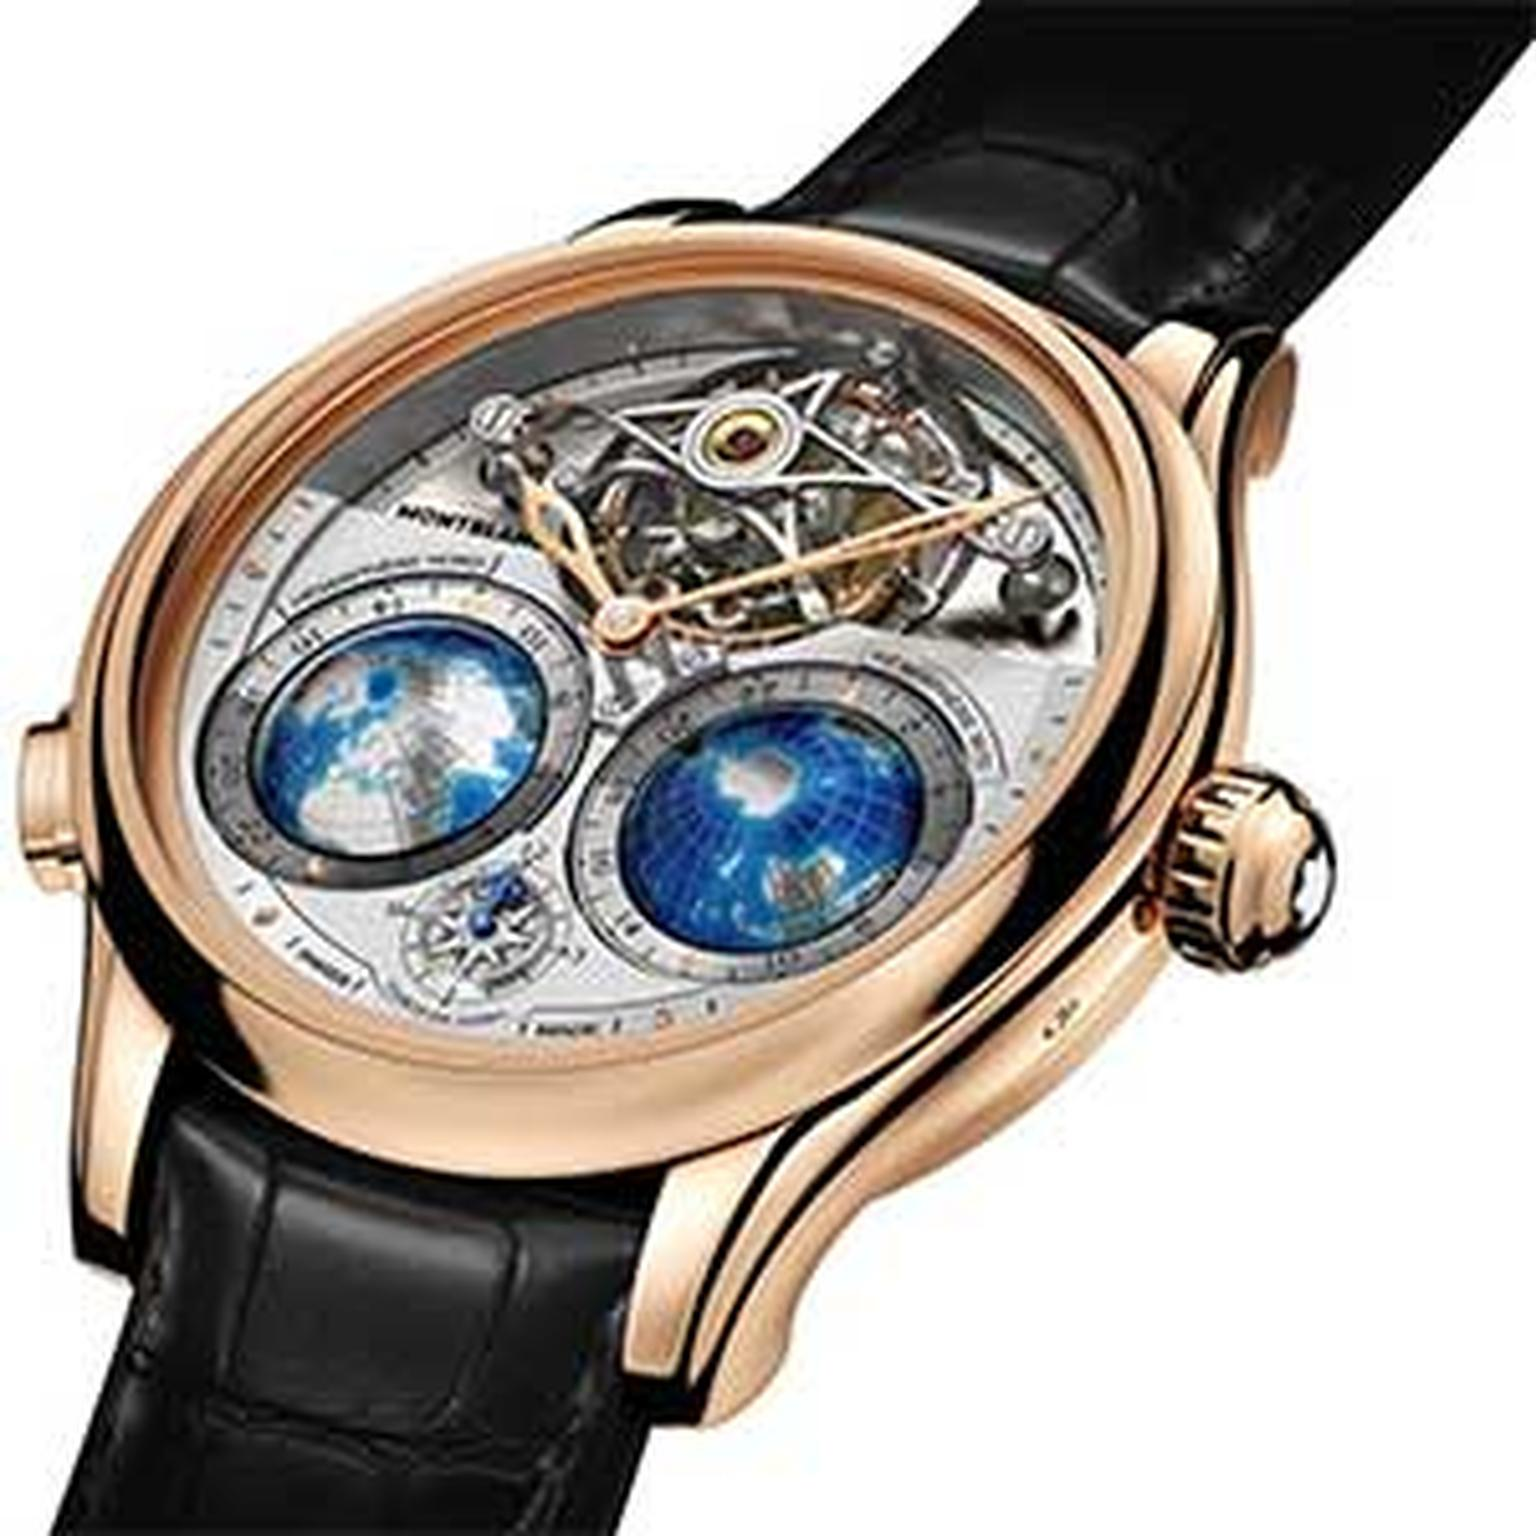 Montblanc -tourbillon -watch